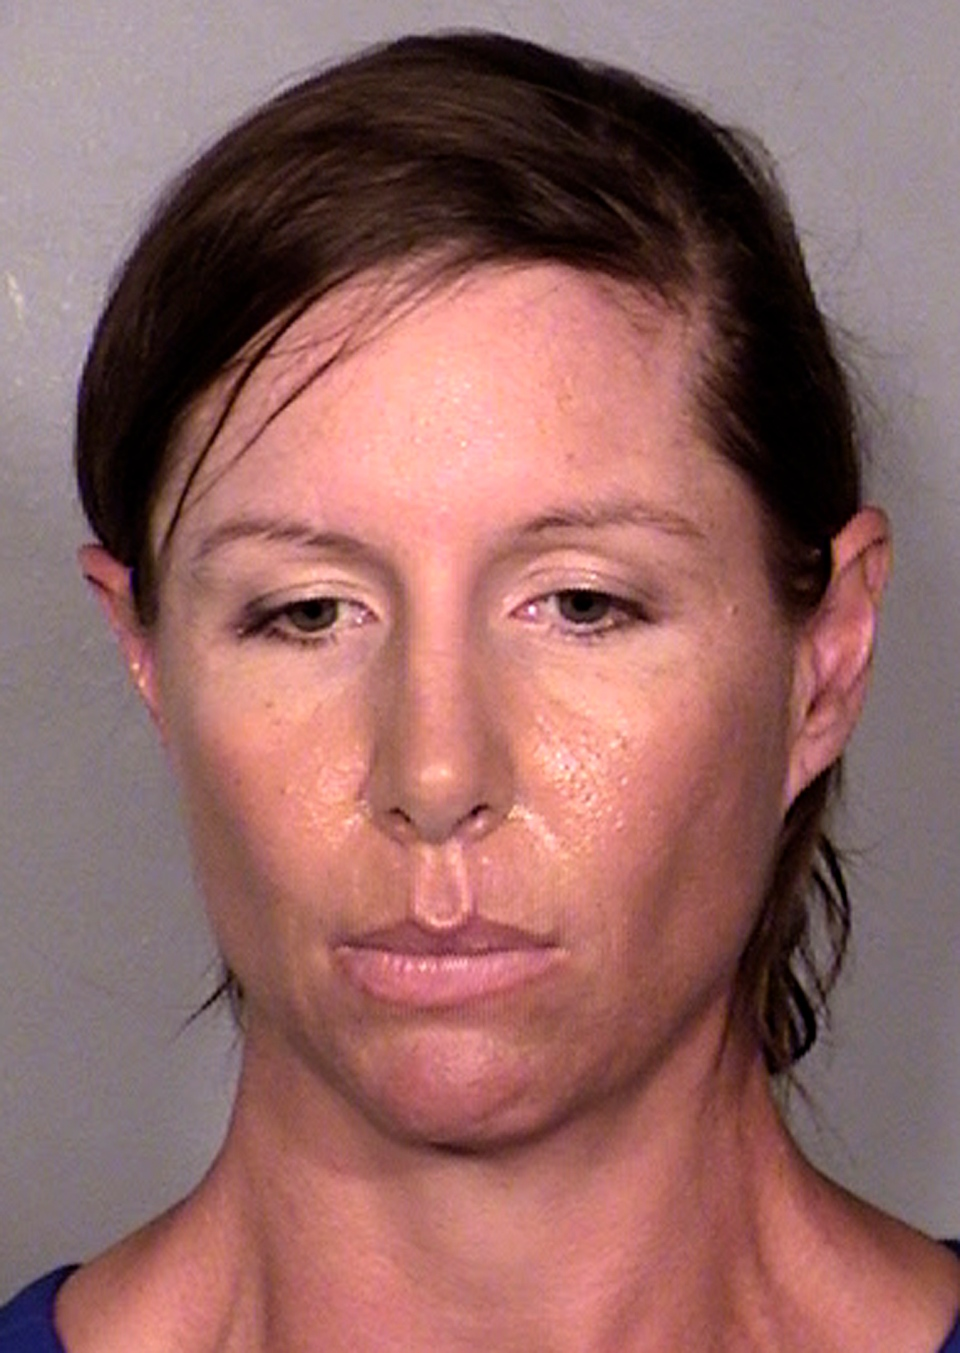 Alison Ernst, who was arrested on April 10, 2014 in connection with an incident involving throwing a shoe at Former Secretary of State and Former First Lady Hillary Clinton, is shown in this image provided by the Last Vegas Metropolitan Police Department.